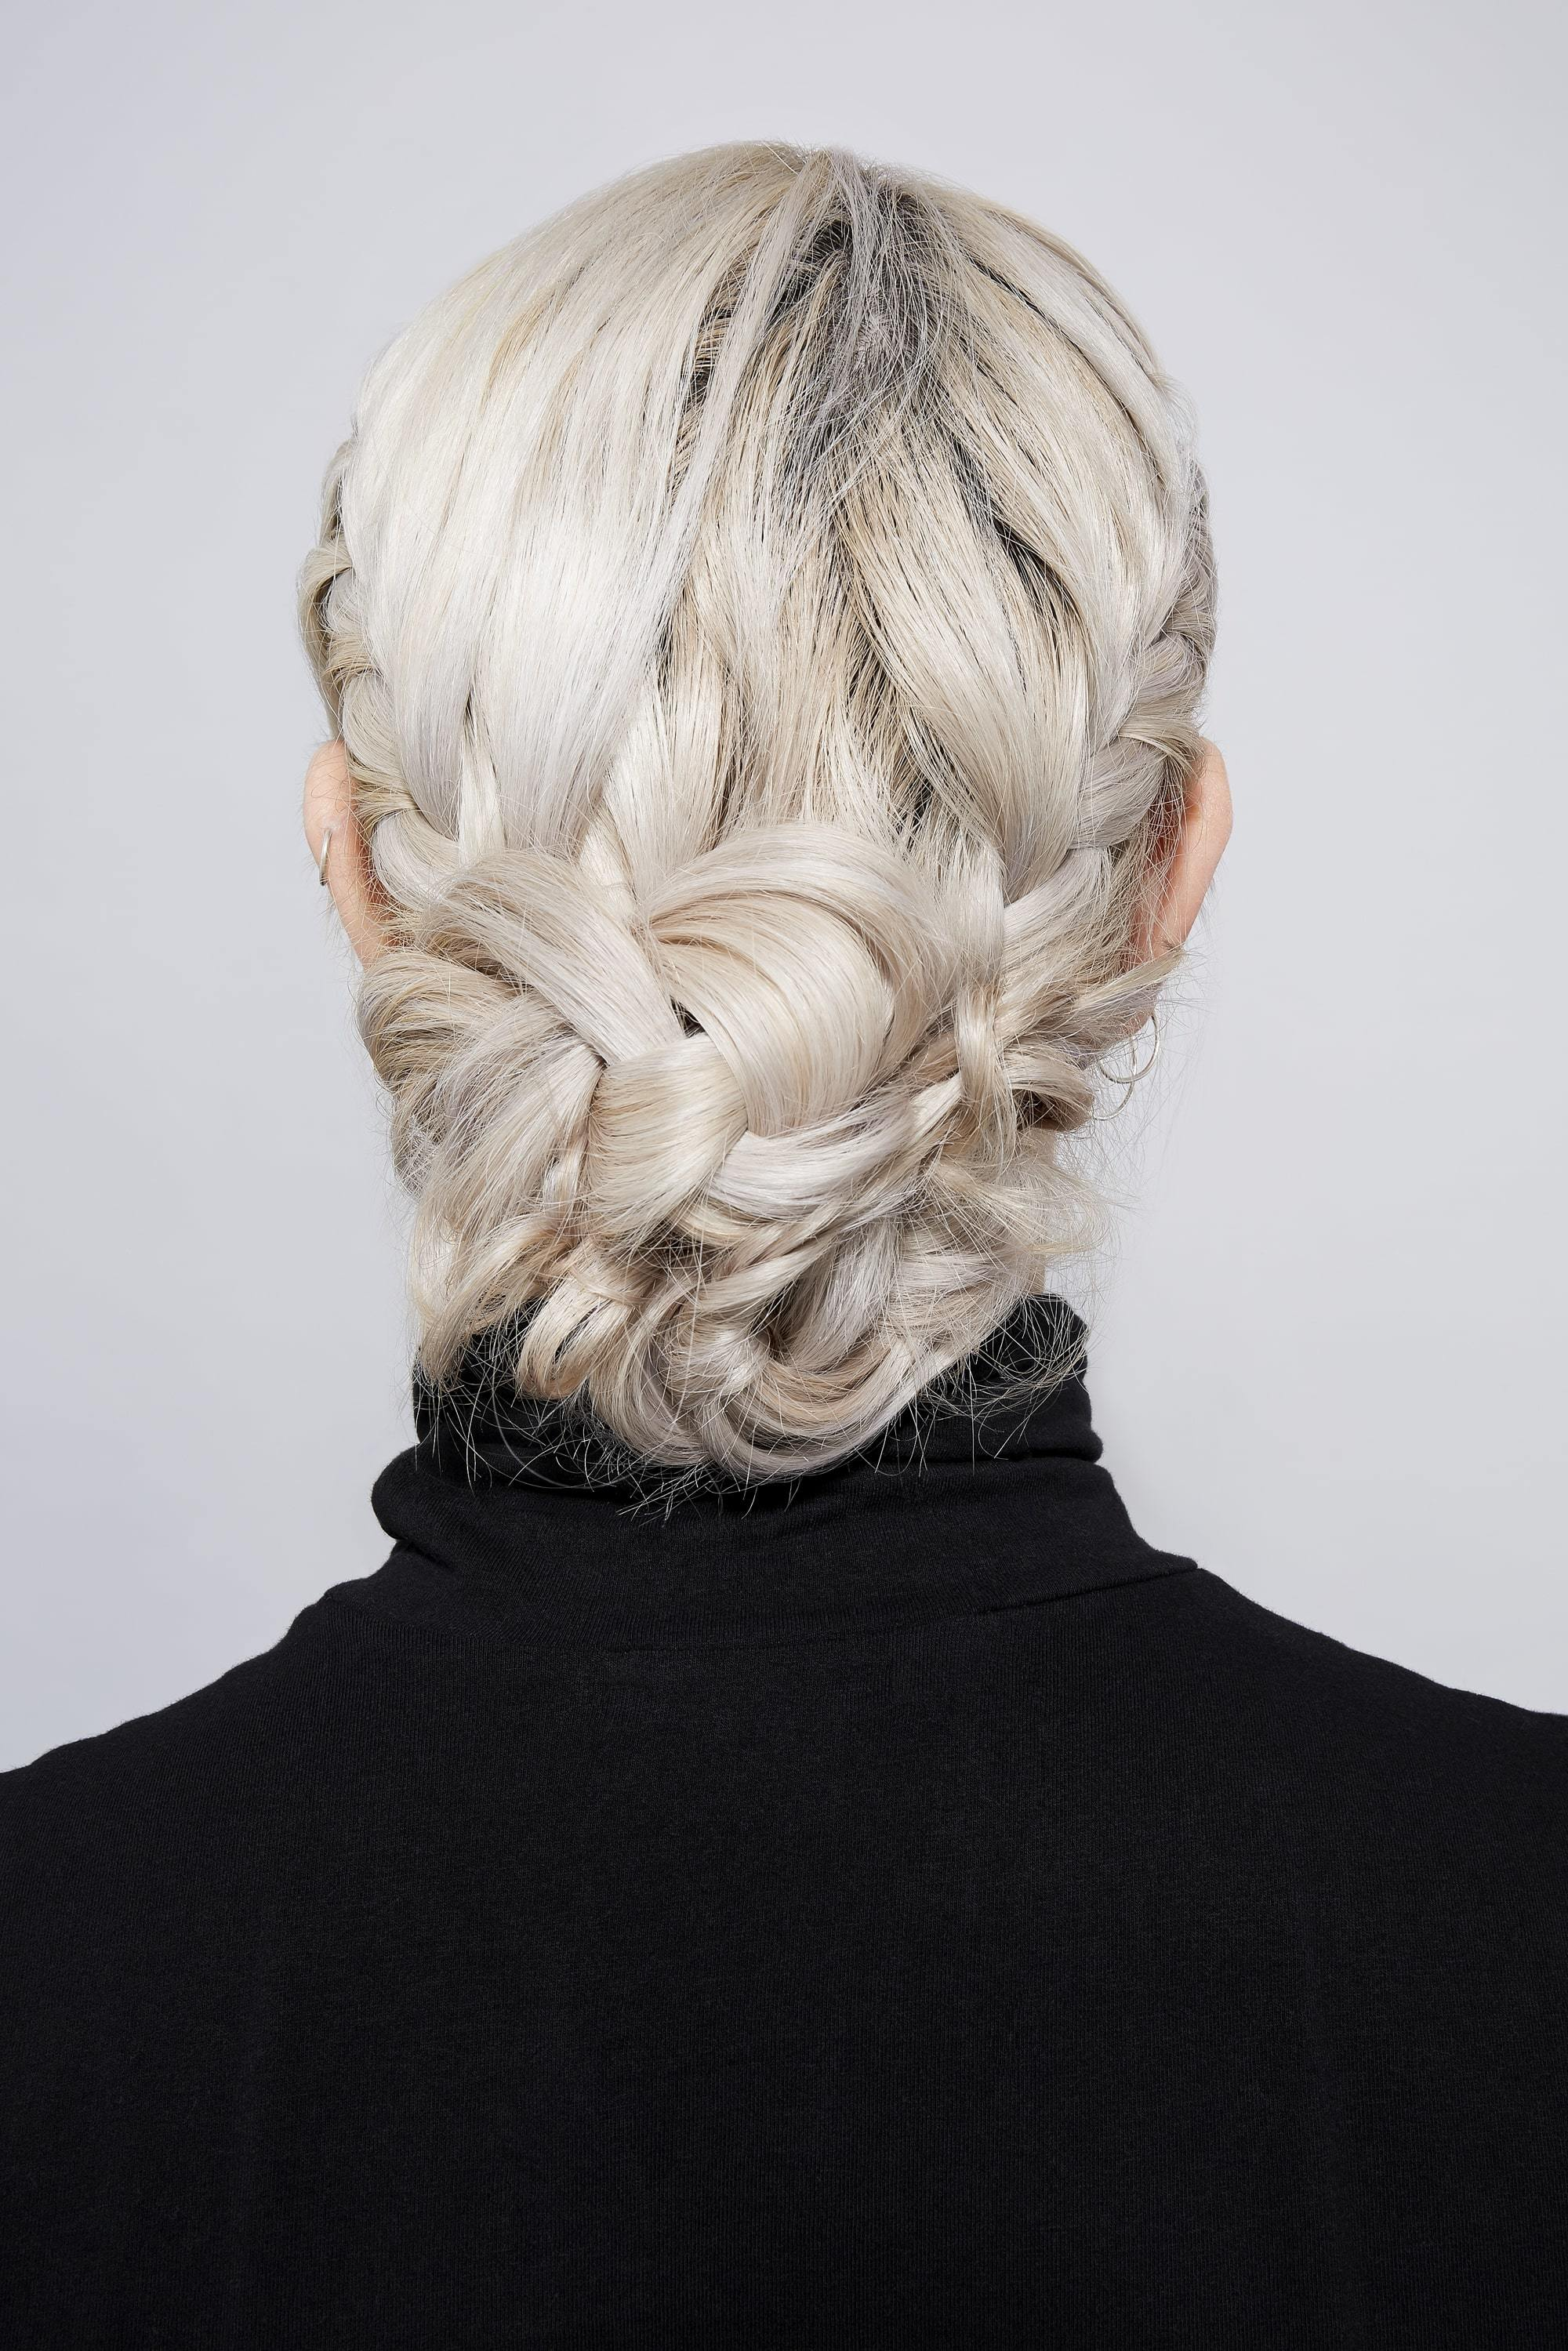 Woman with ice blonde hair in two French braids tied into a bun